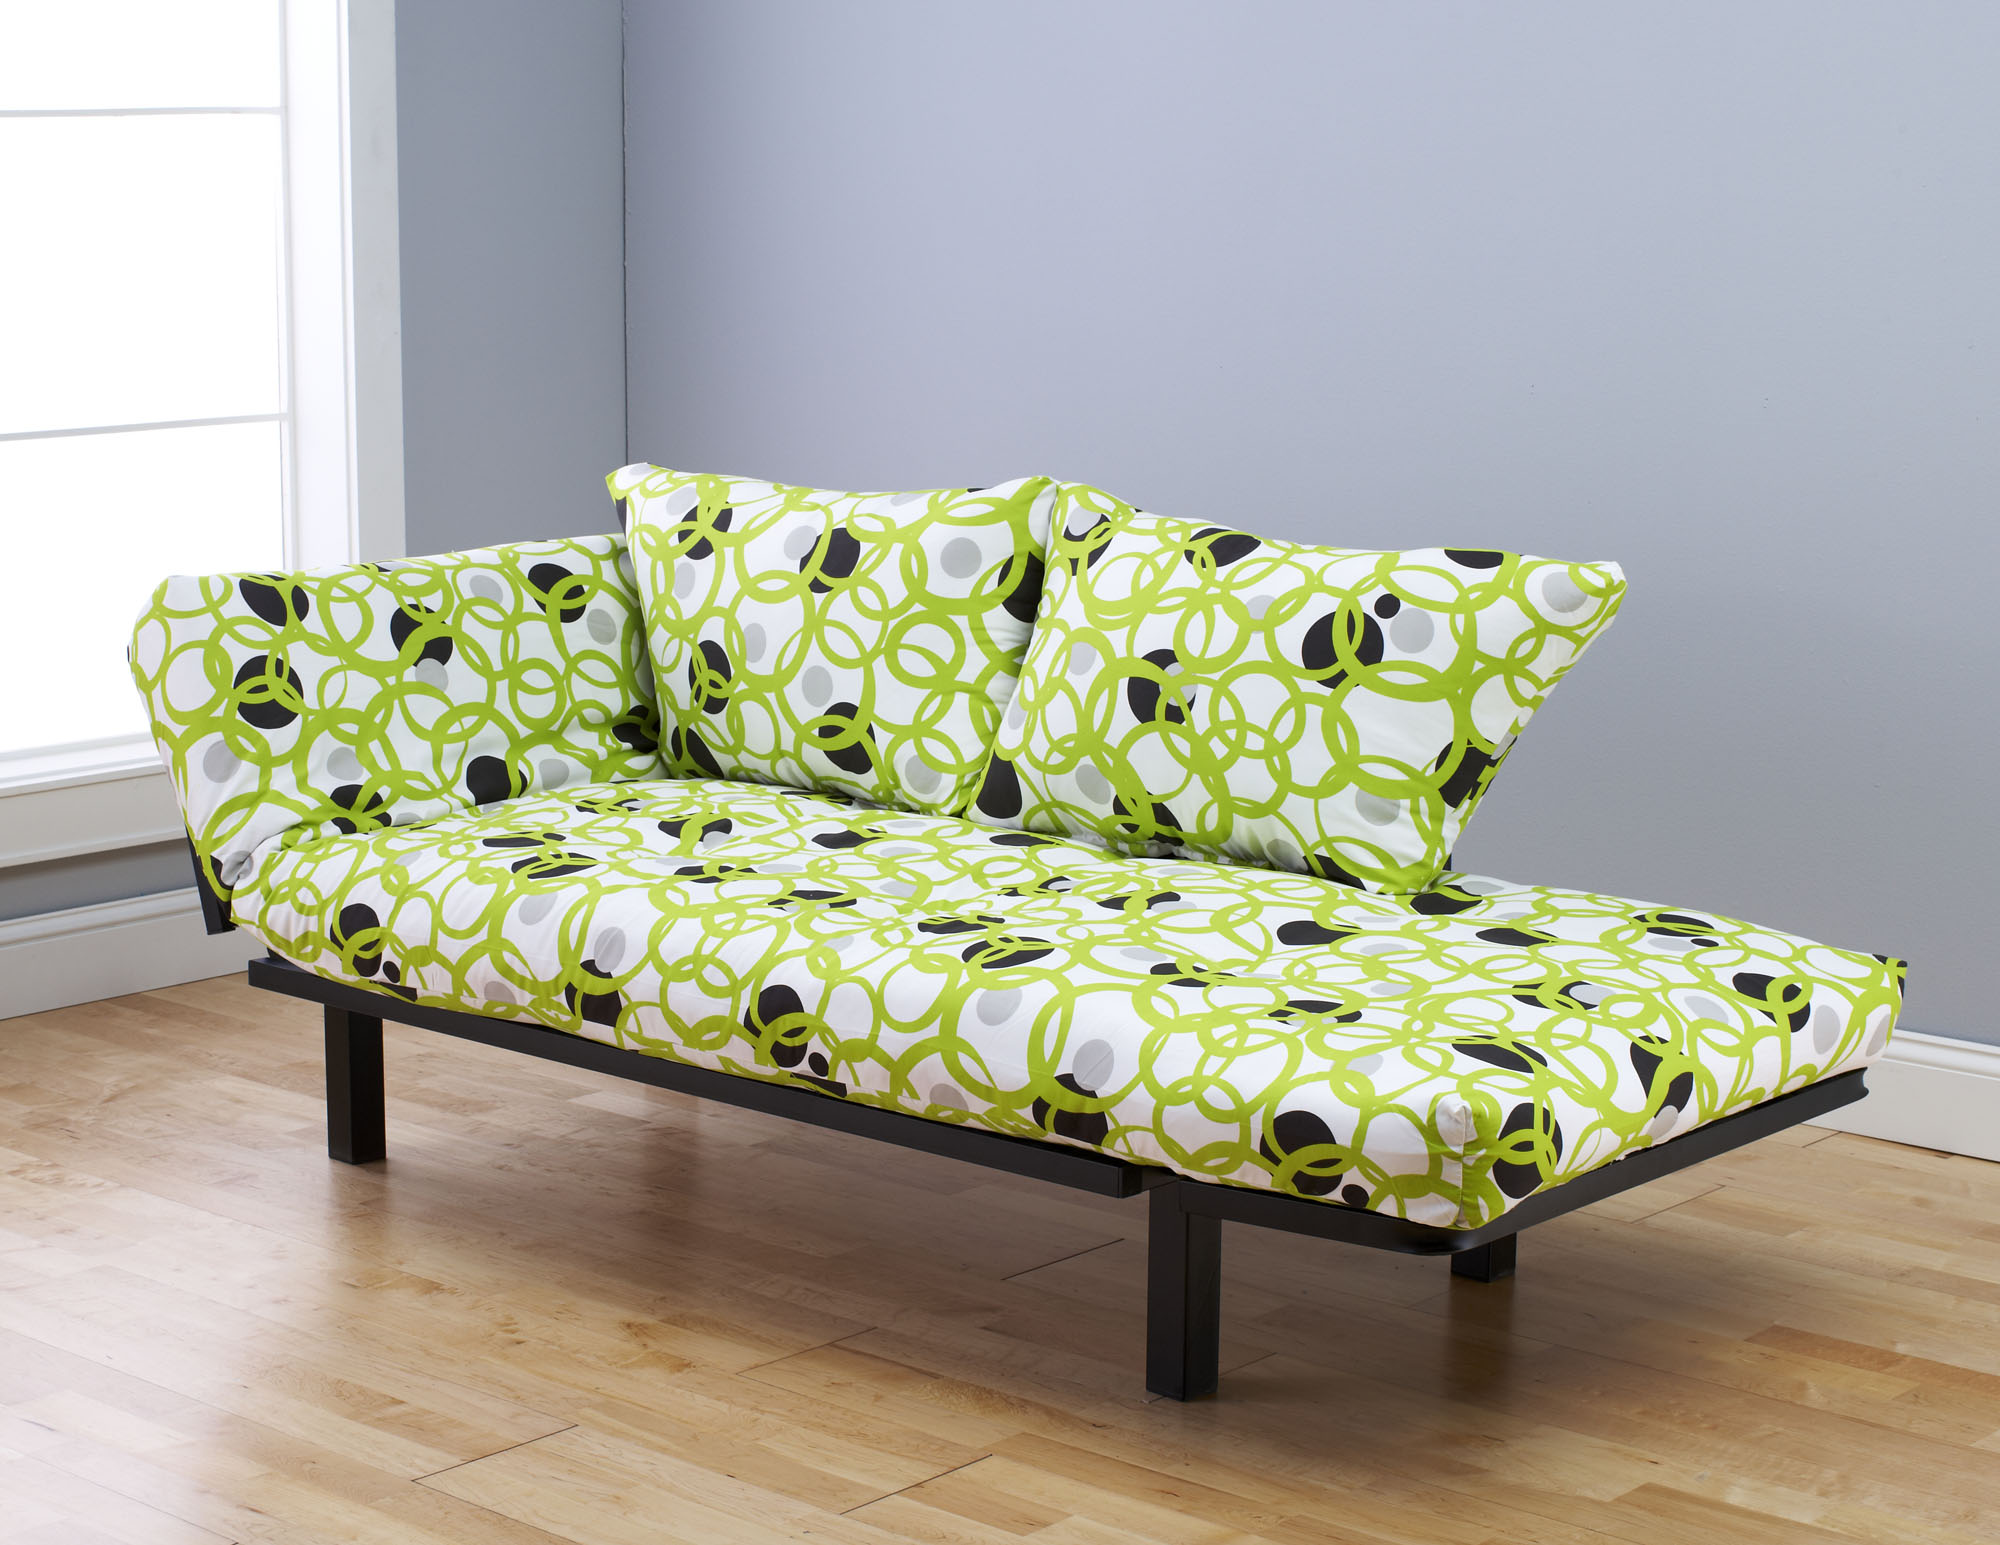 Spacely Futon Daybed Lounger with Mattress Full Circle by Kodiak